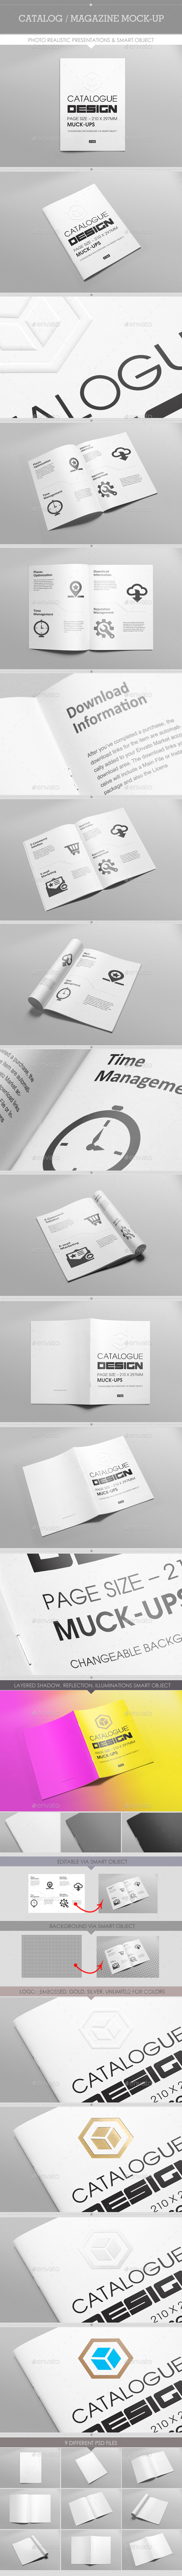 Catalog Magazine Mock-Ups